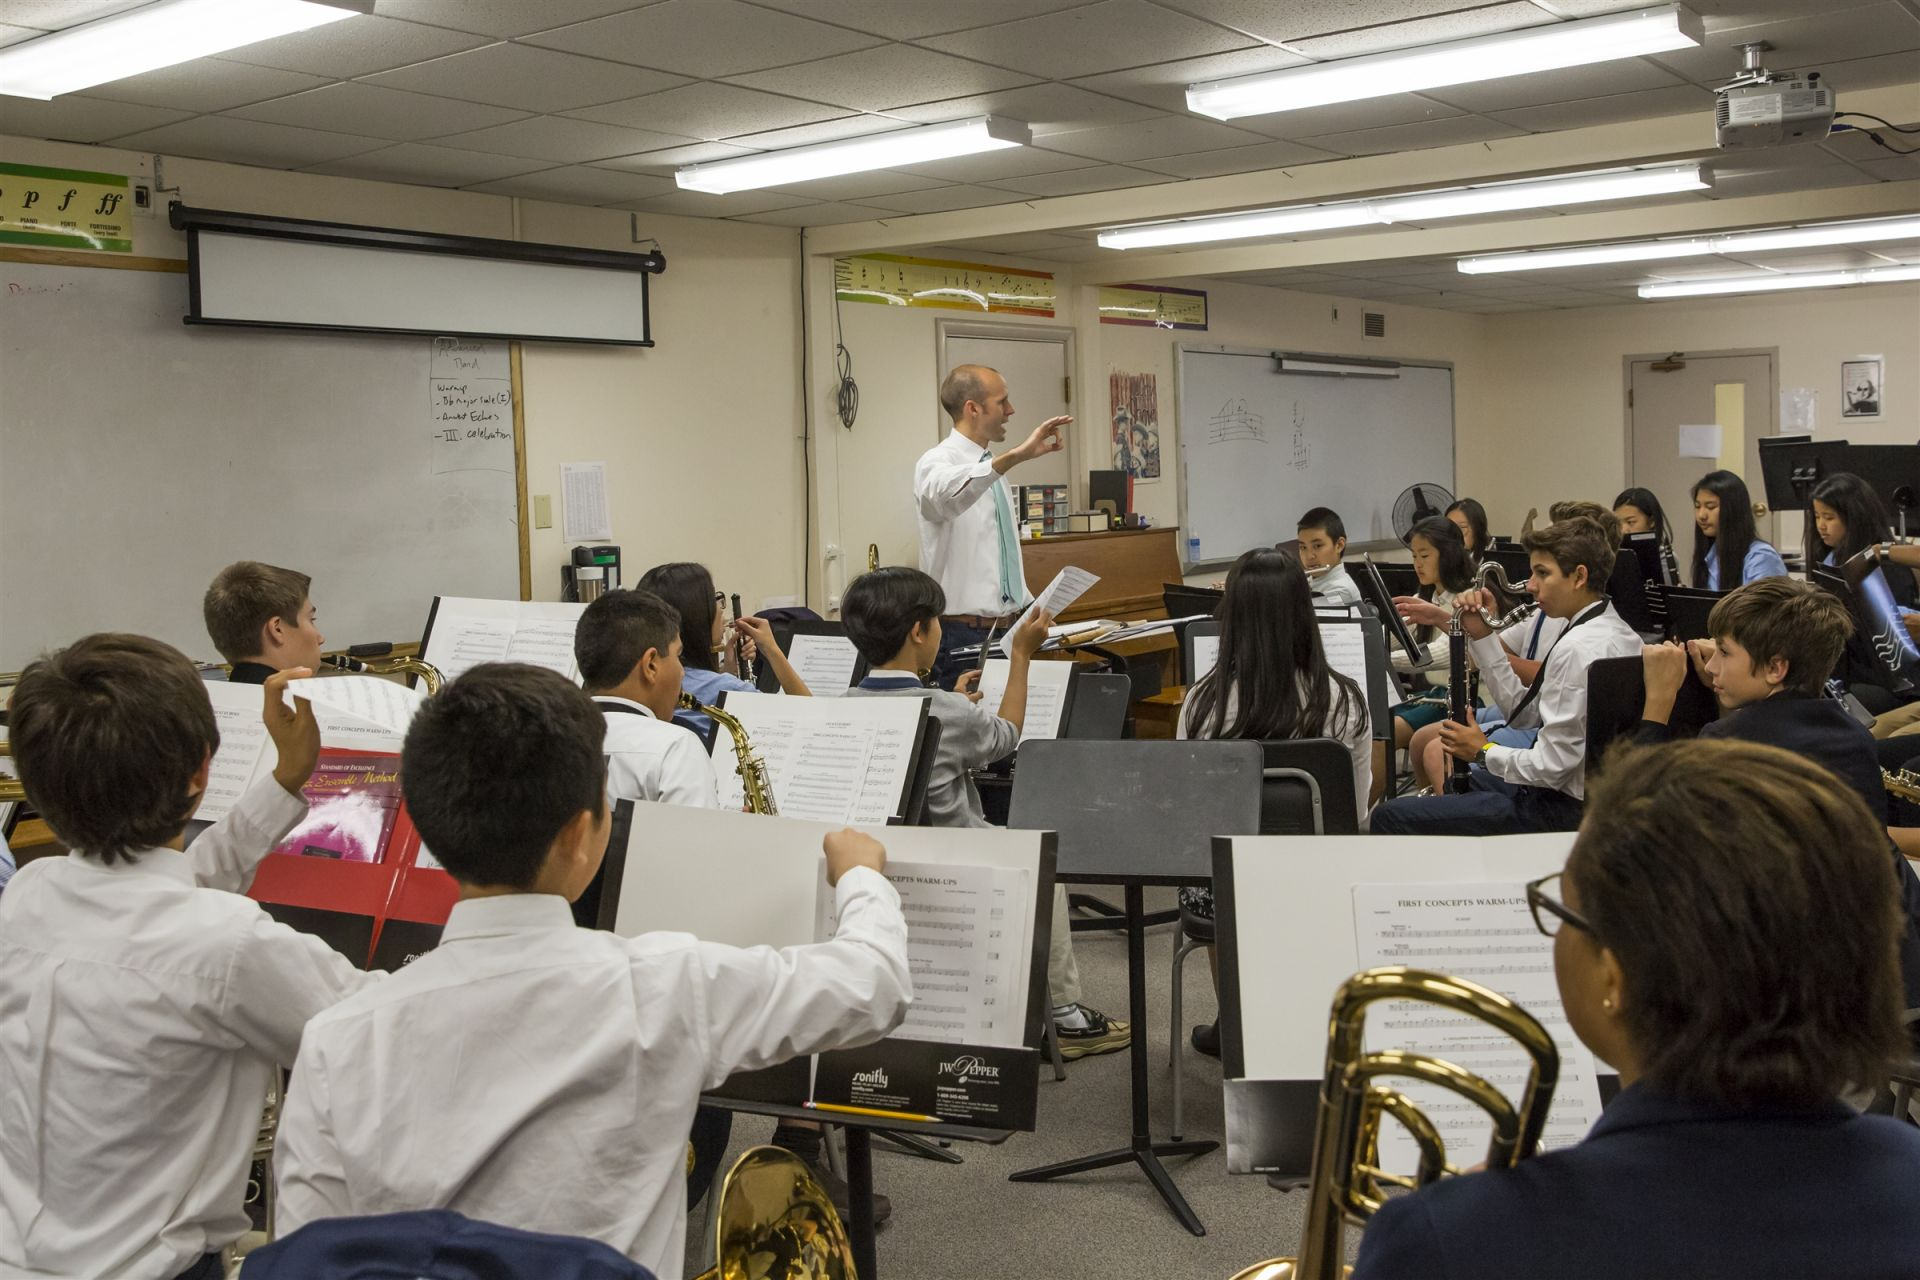 Each Upper School student chooses from one of the many music courses Fay offers, which include vocal ensembles, string ensemble, band, and bells. Everyone has the opportunity to participate, regardless of experience or skill level, and our performances throughout the year showcase the talents and interests of our student body. Because music practices are scheduled during the school day, they don't conflict with sports, which means that students can take part in a range of activities during their time at Fay.